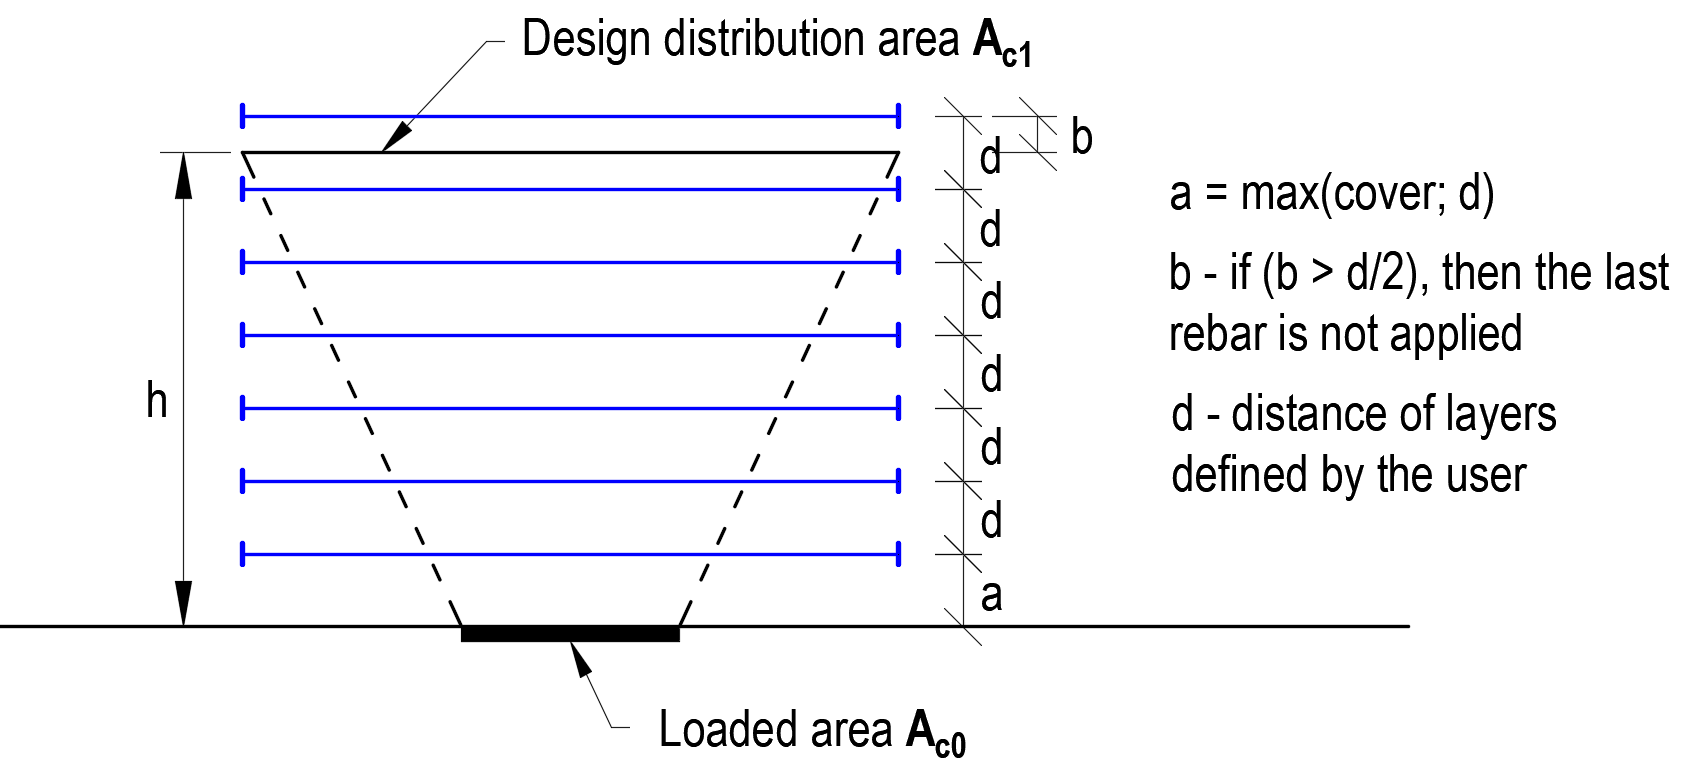 IDEA StatiCa UK - Partially loaded areas reinforced